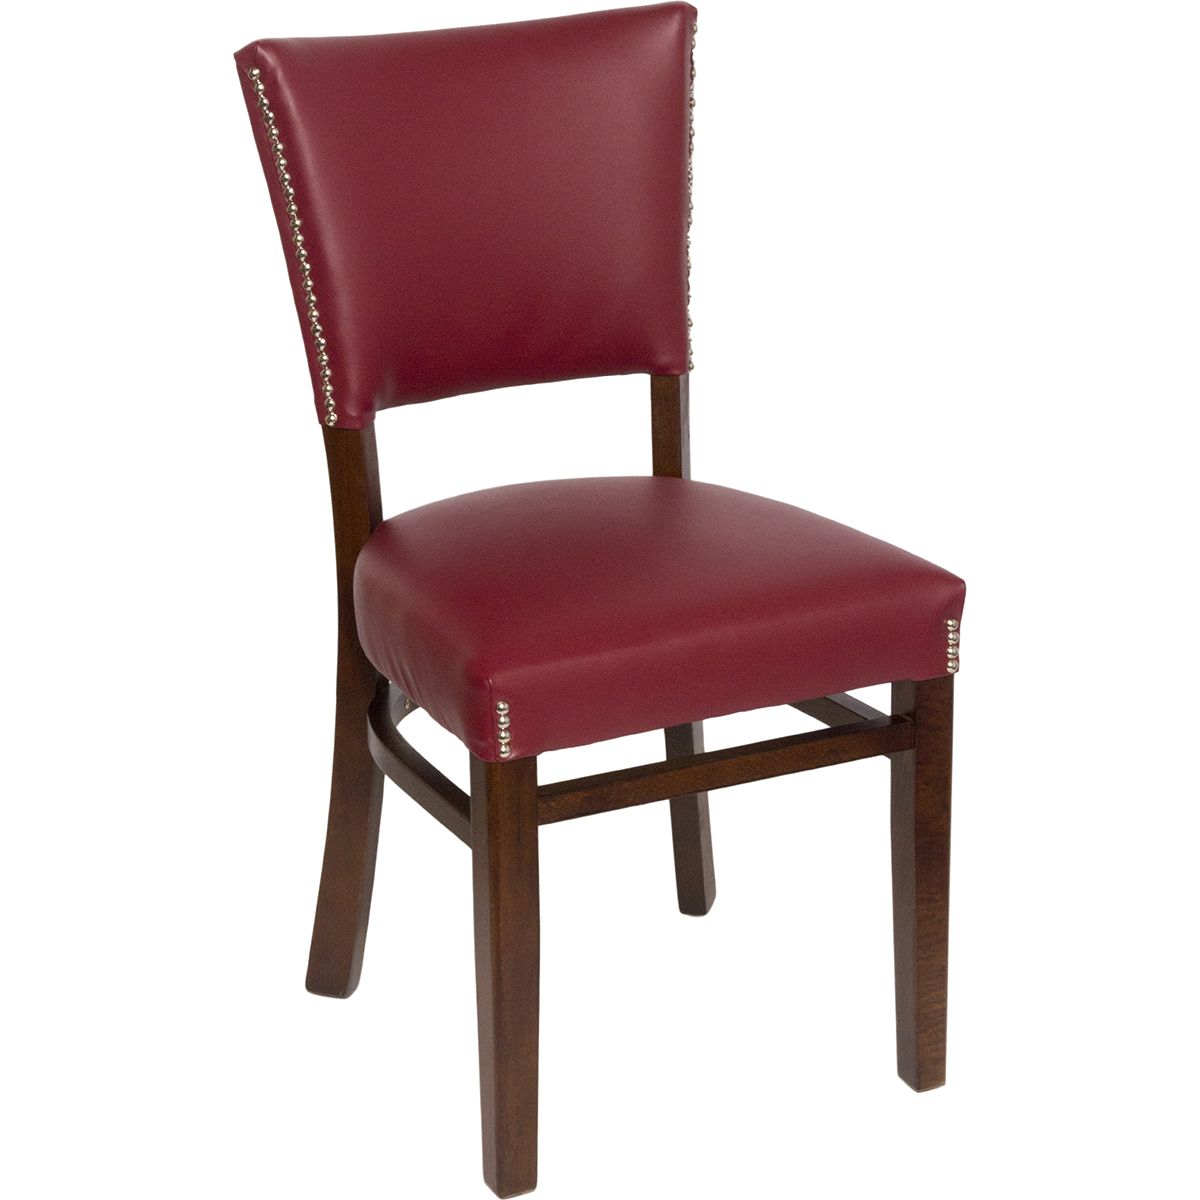 Chairs wood upholstered flared pullover back chair